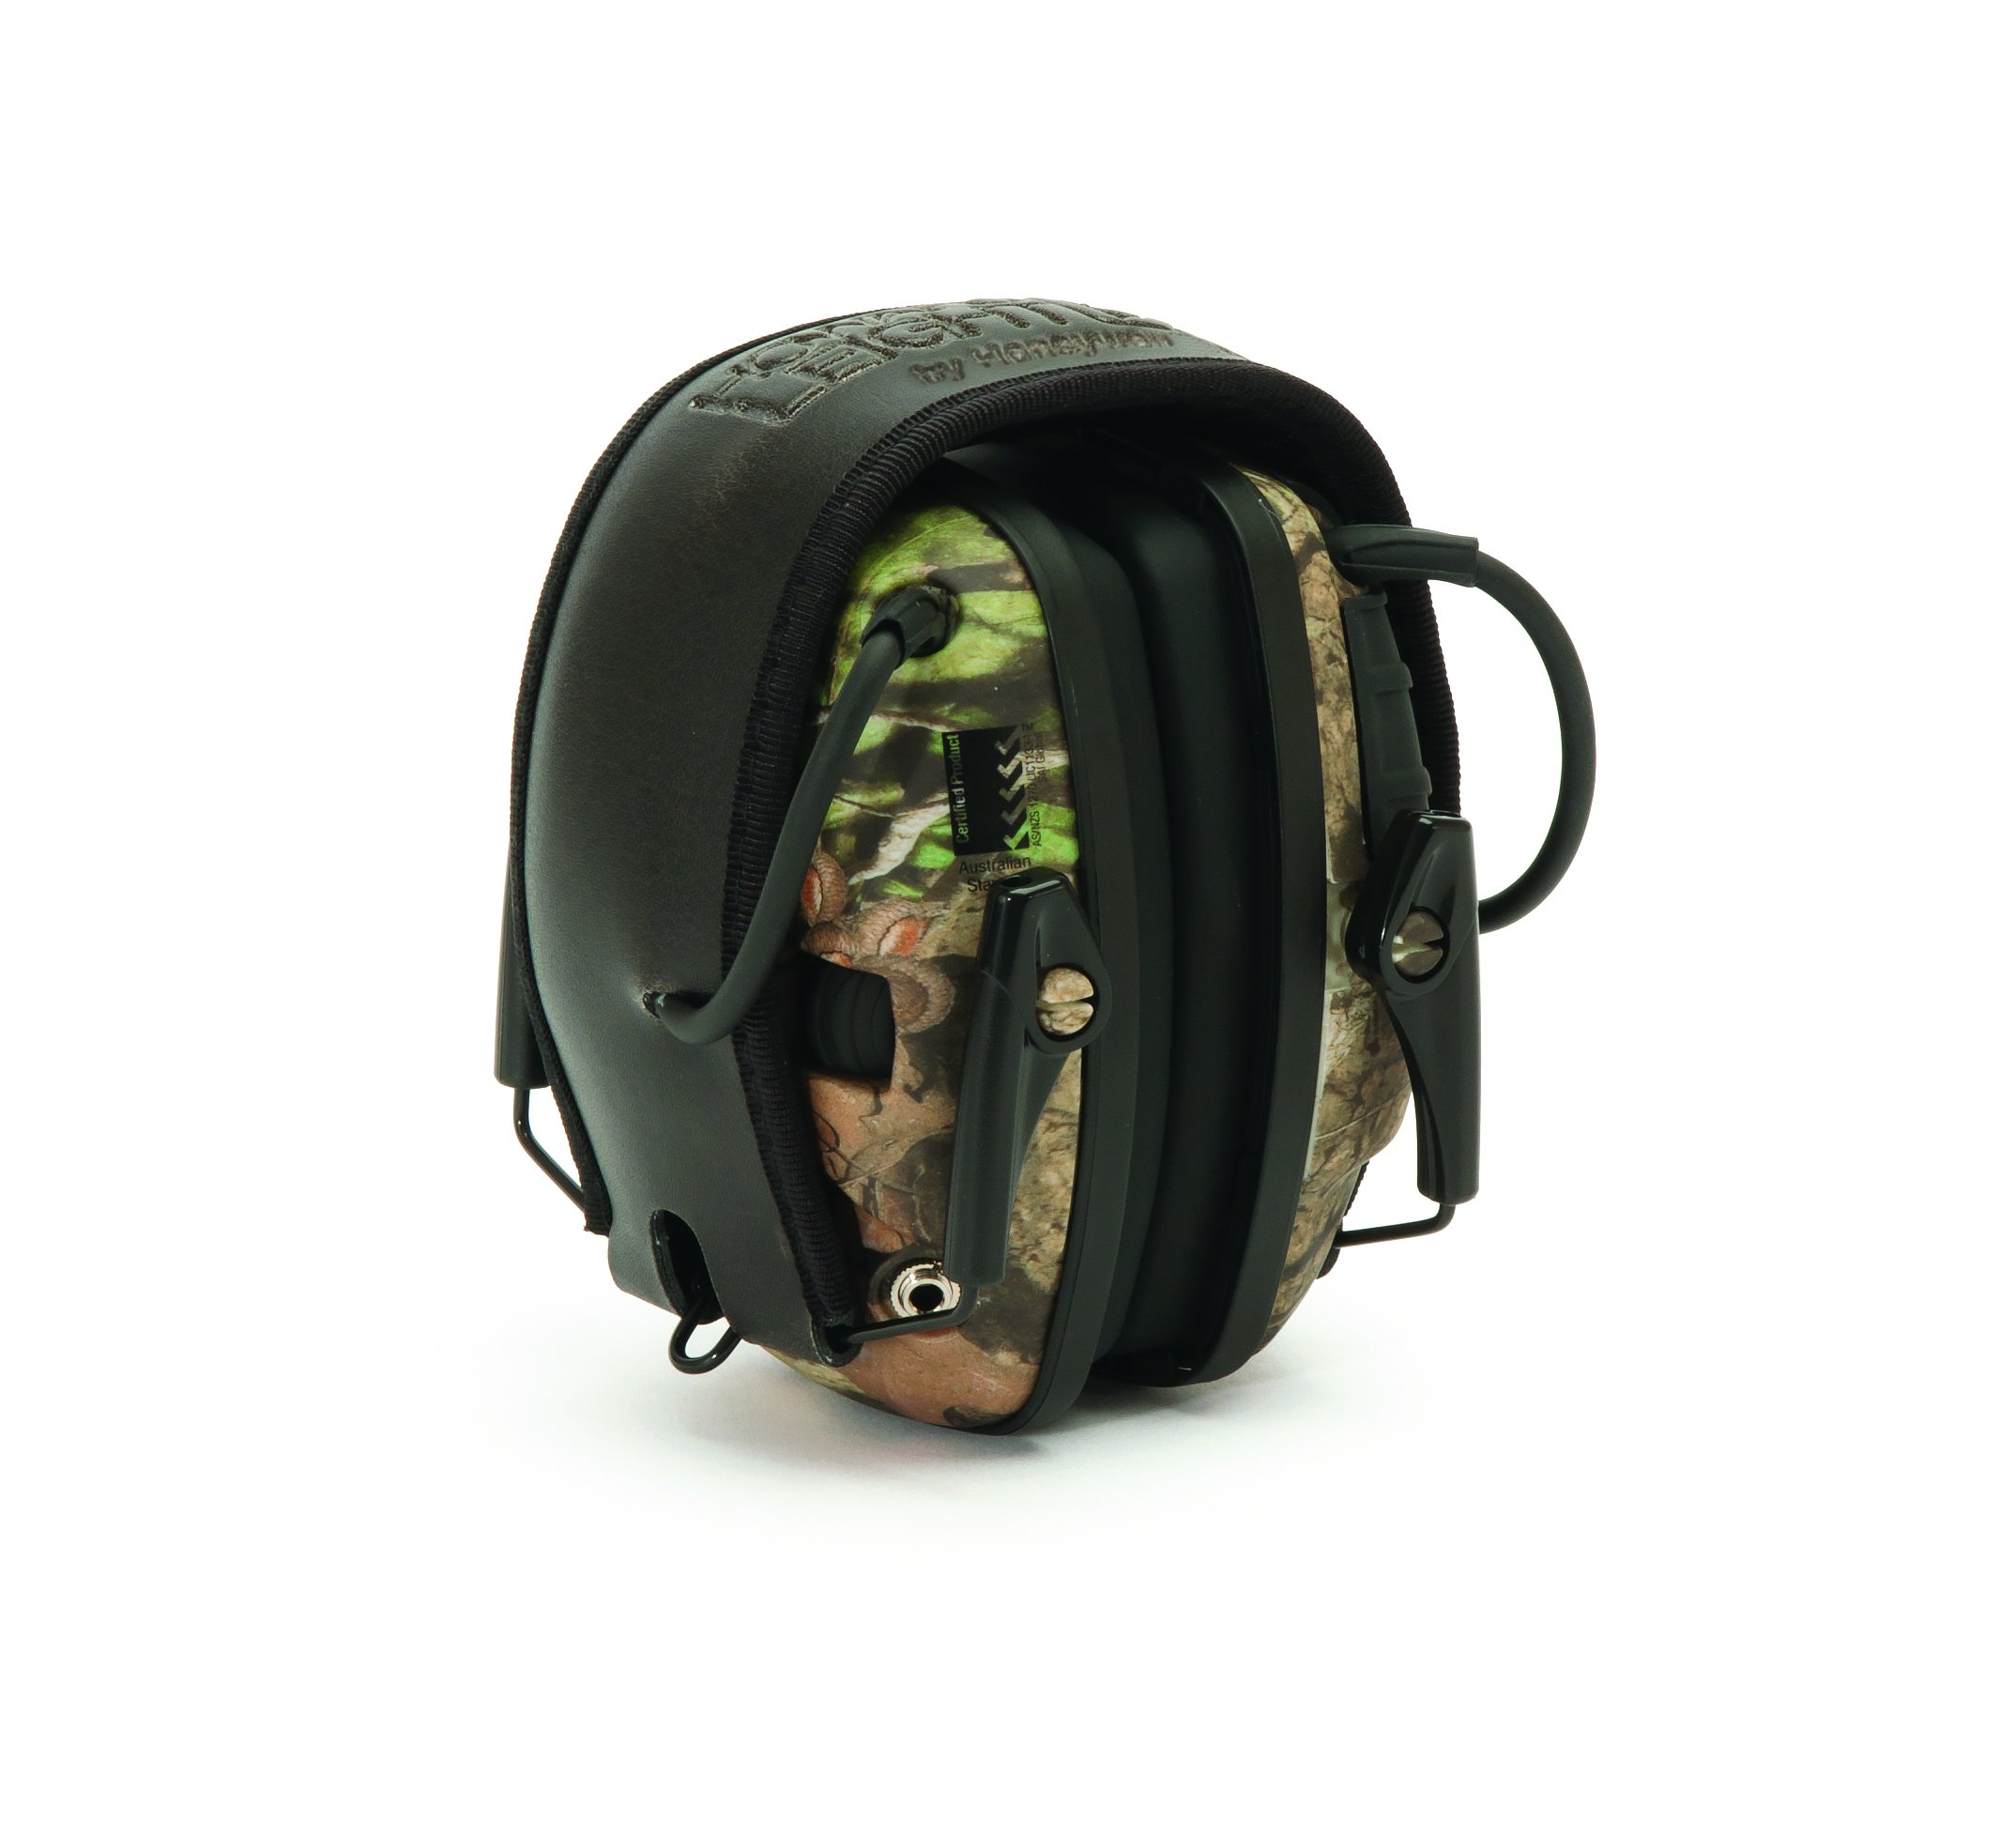 Howard Leight by Honeywell Impact Sport Sound Amplification Electronic Shooting Earmuff, Camo (R-01530) by Howard Leight